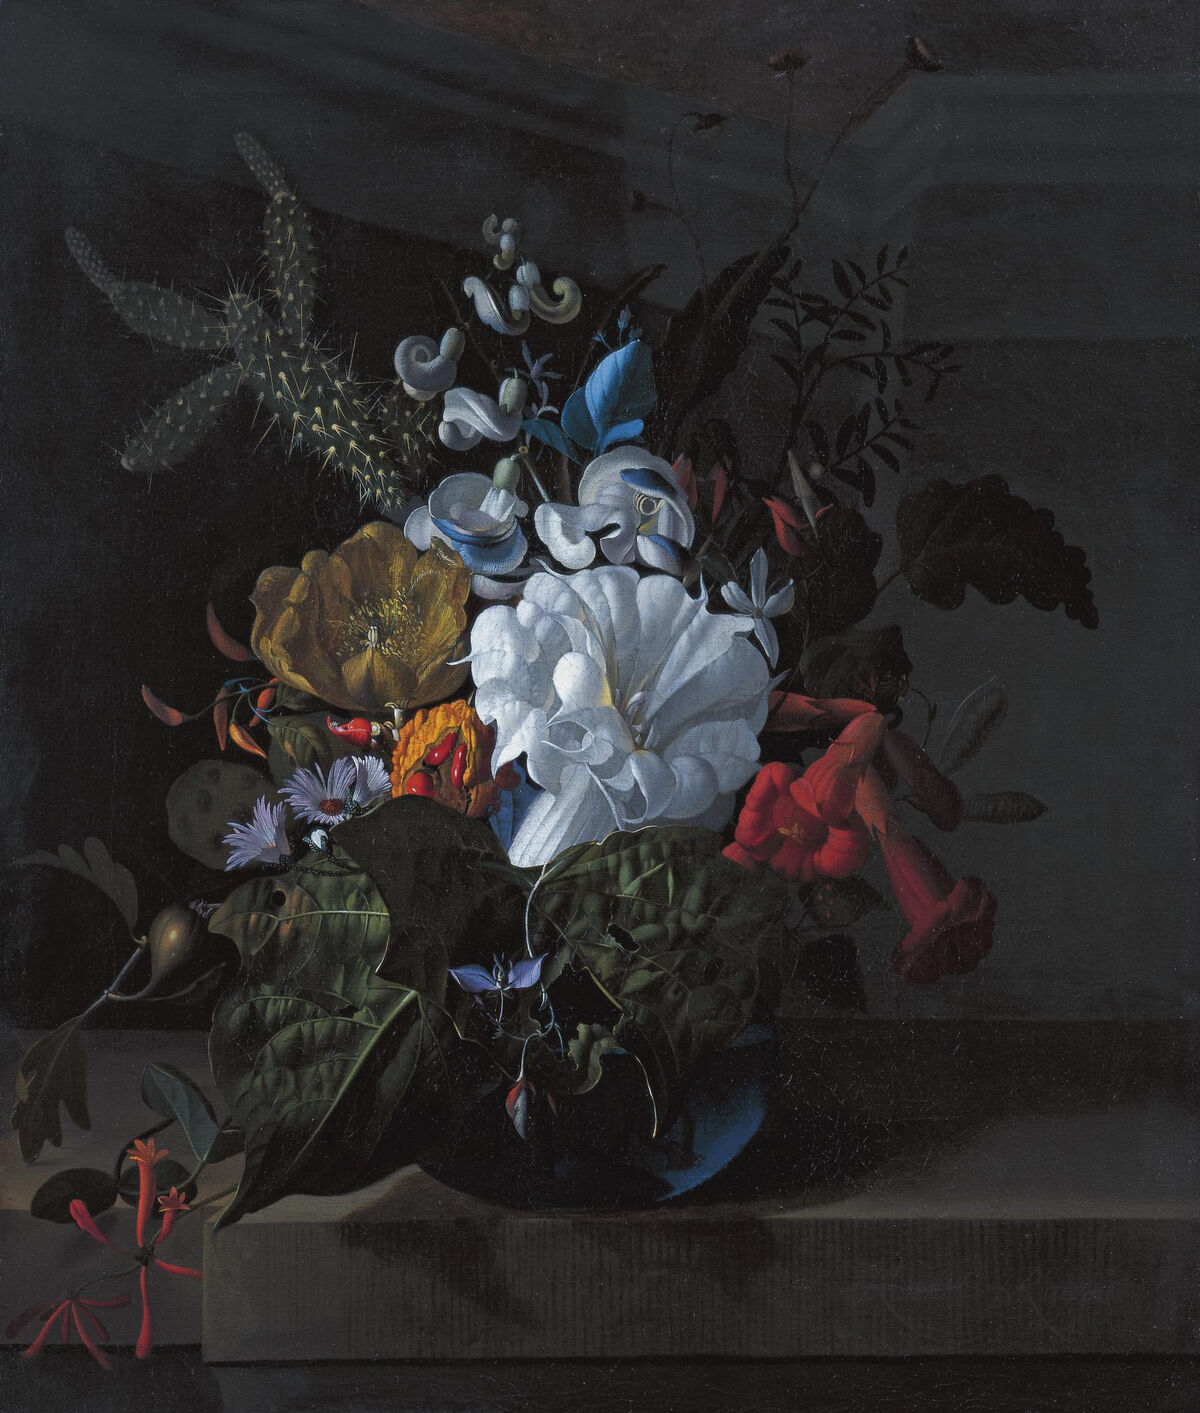 Rachel Ruysch, A still life with devil's trumpet, a cactus, a fig branch, honeysuckle and other flowers in a blue glass vase resting on a ledge, ca. 1690. Image via Wikimedia Commons.